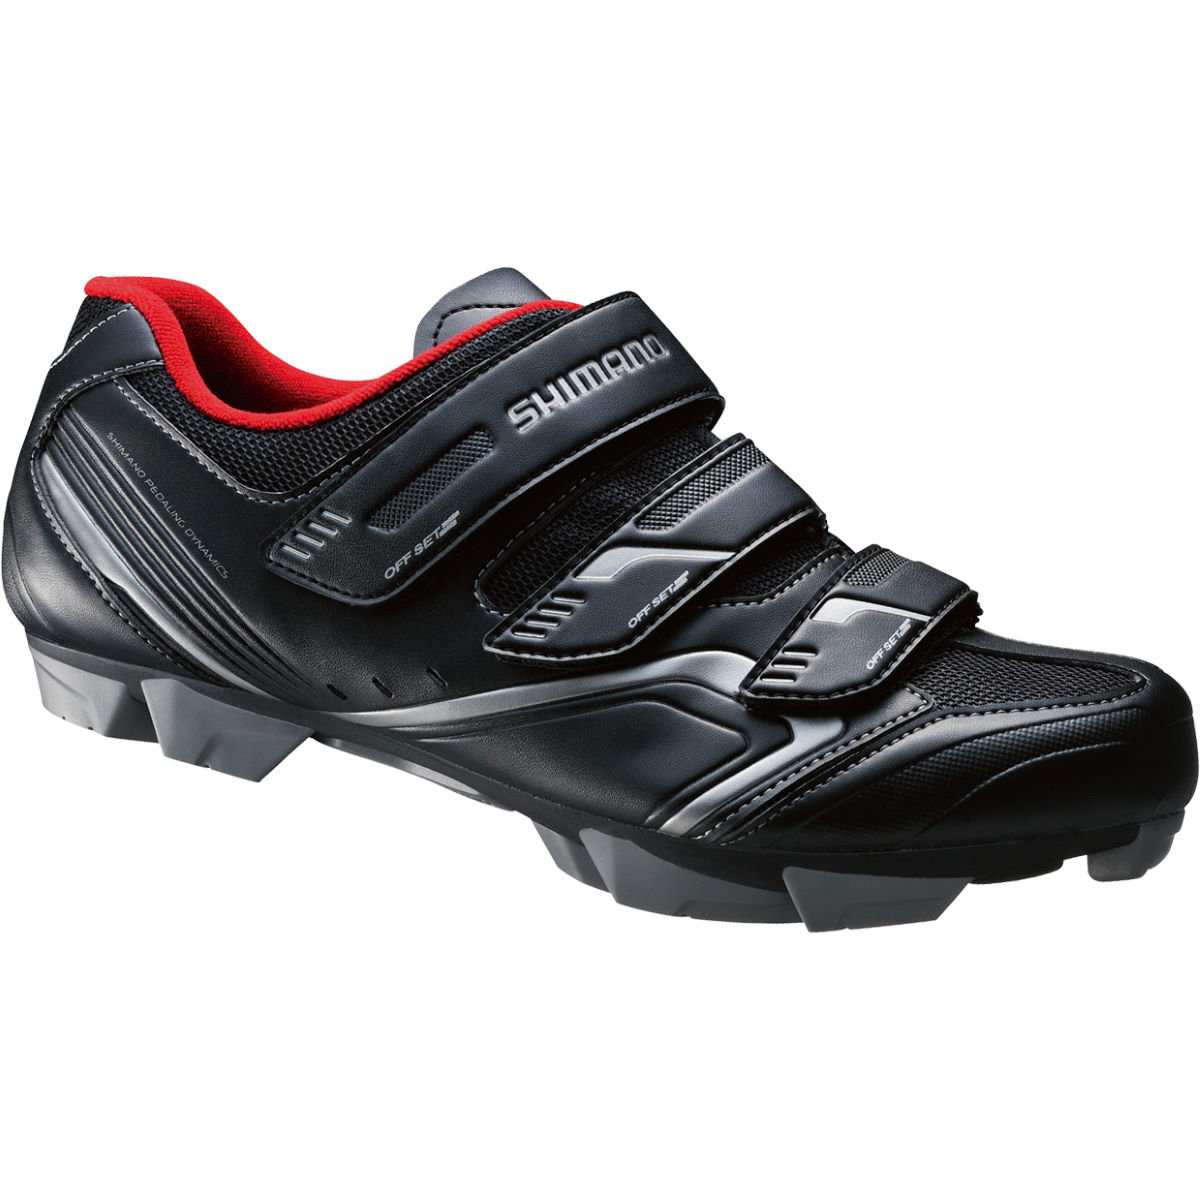 Shimano XC30 SPD Mountain Bike Shoes